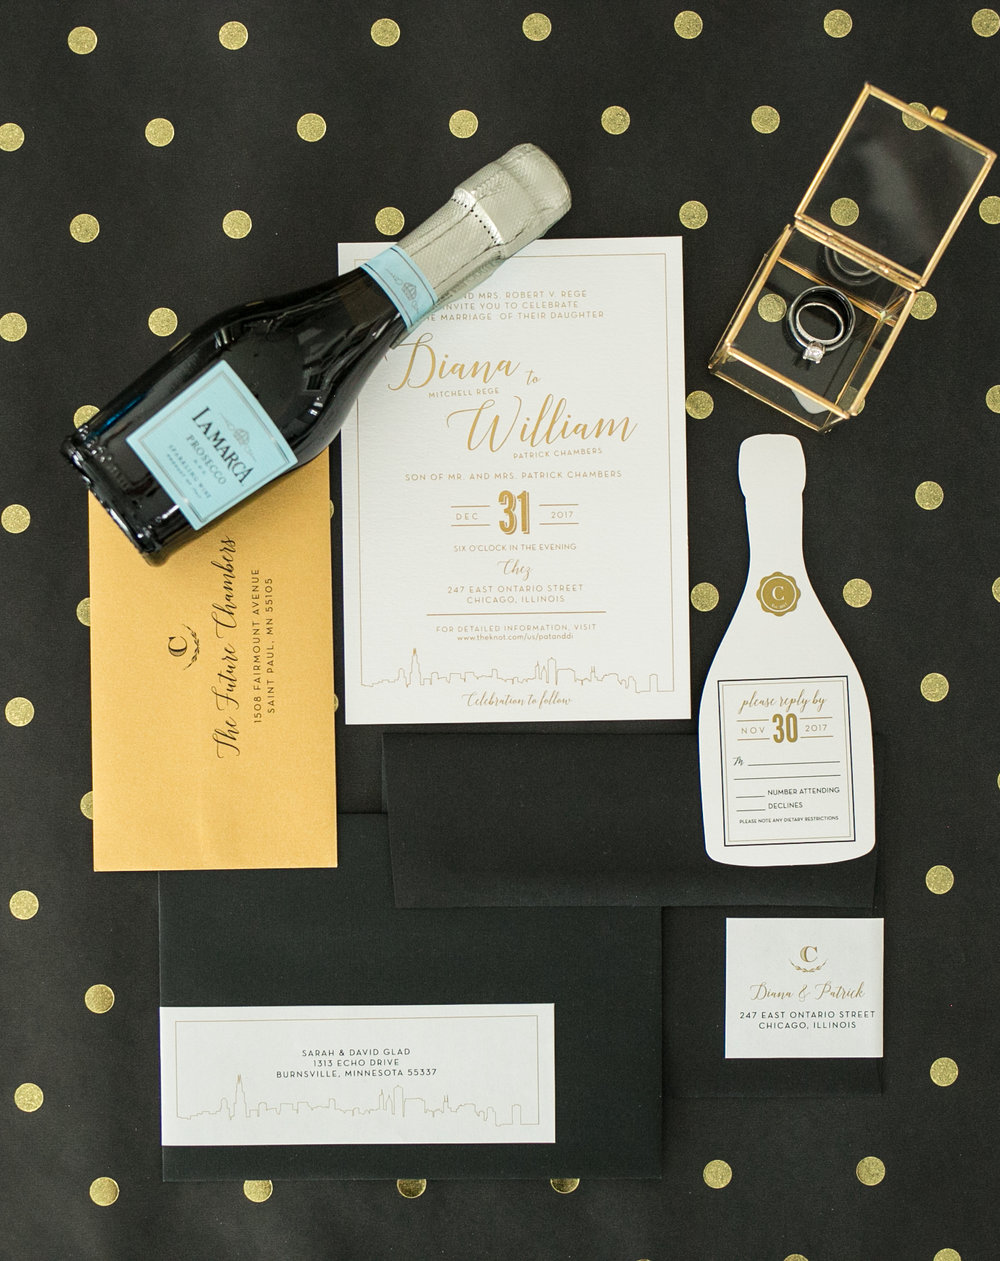 White and Gold Wedding Invitations Photography by Chelsea Bolling Minneapolis